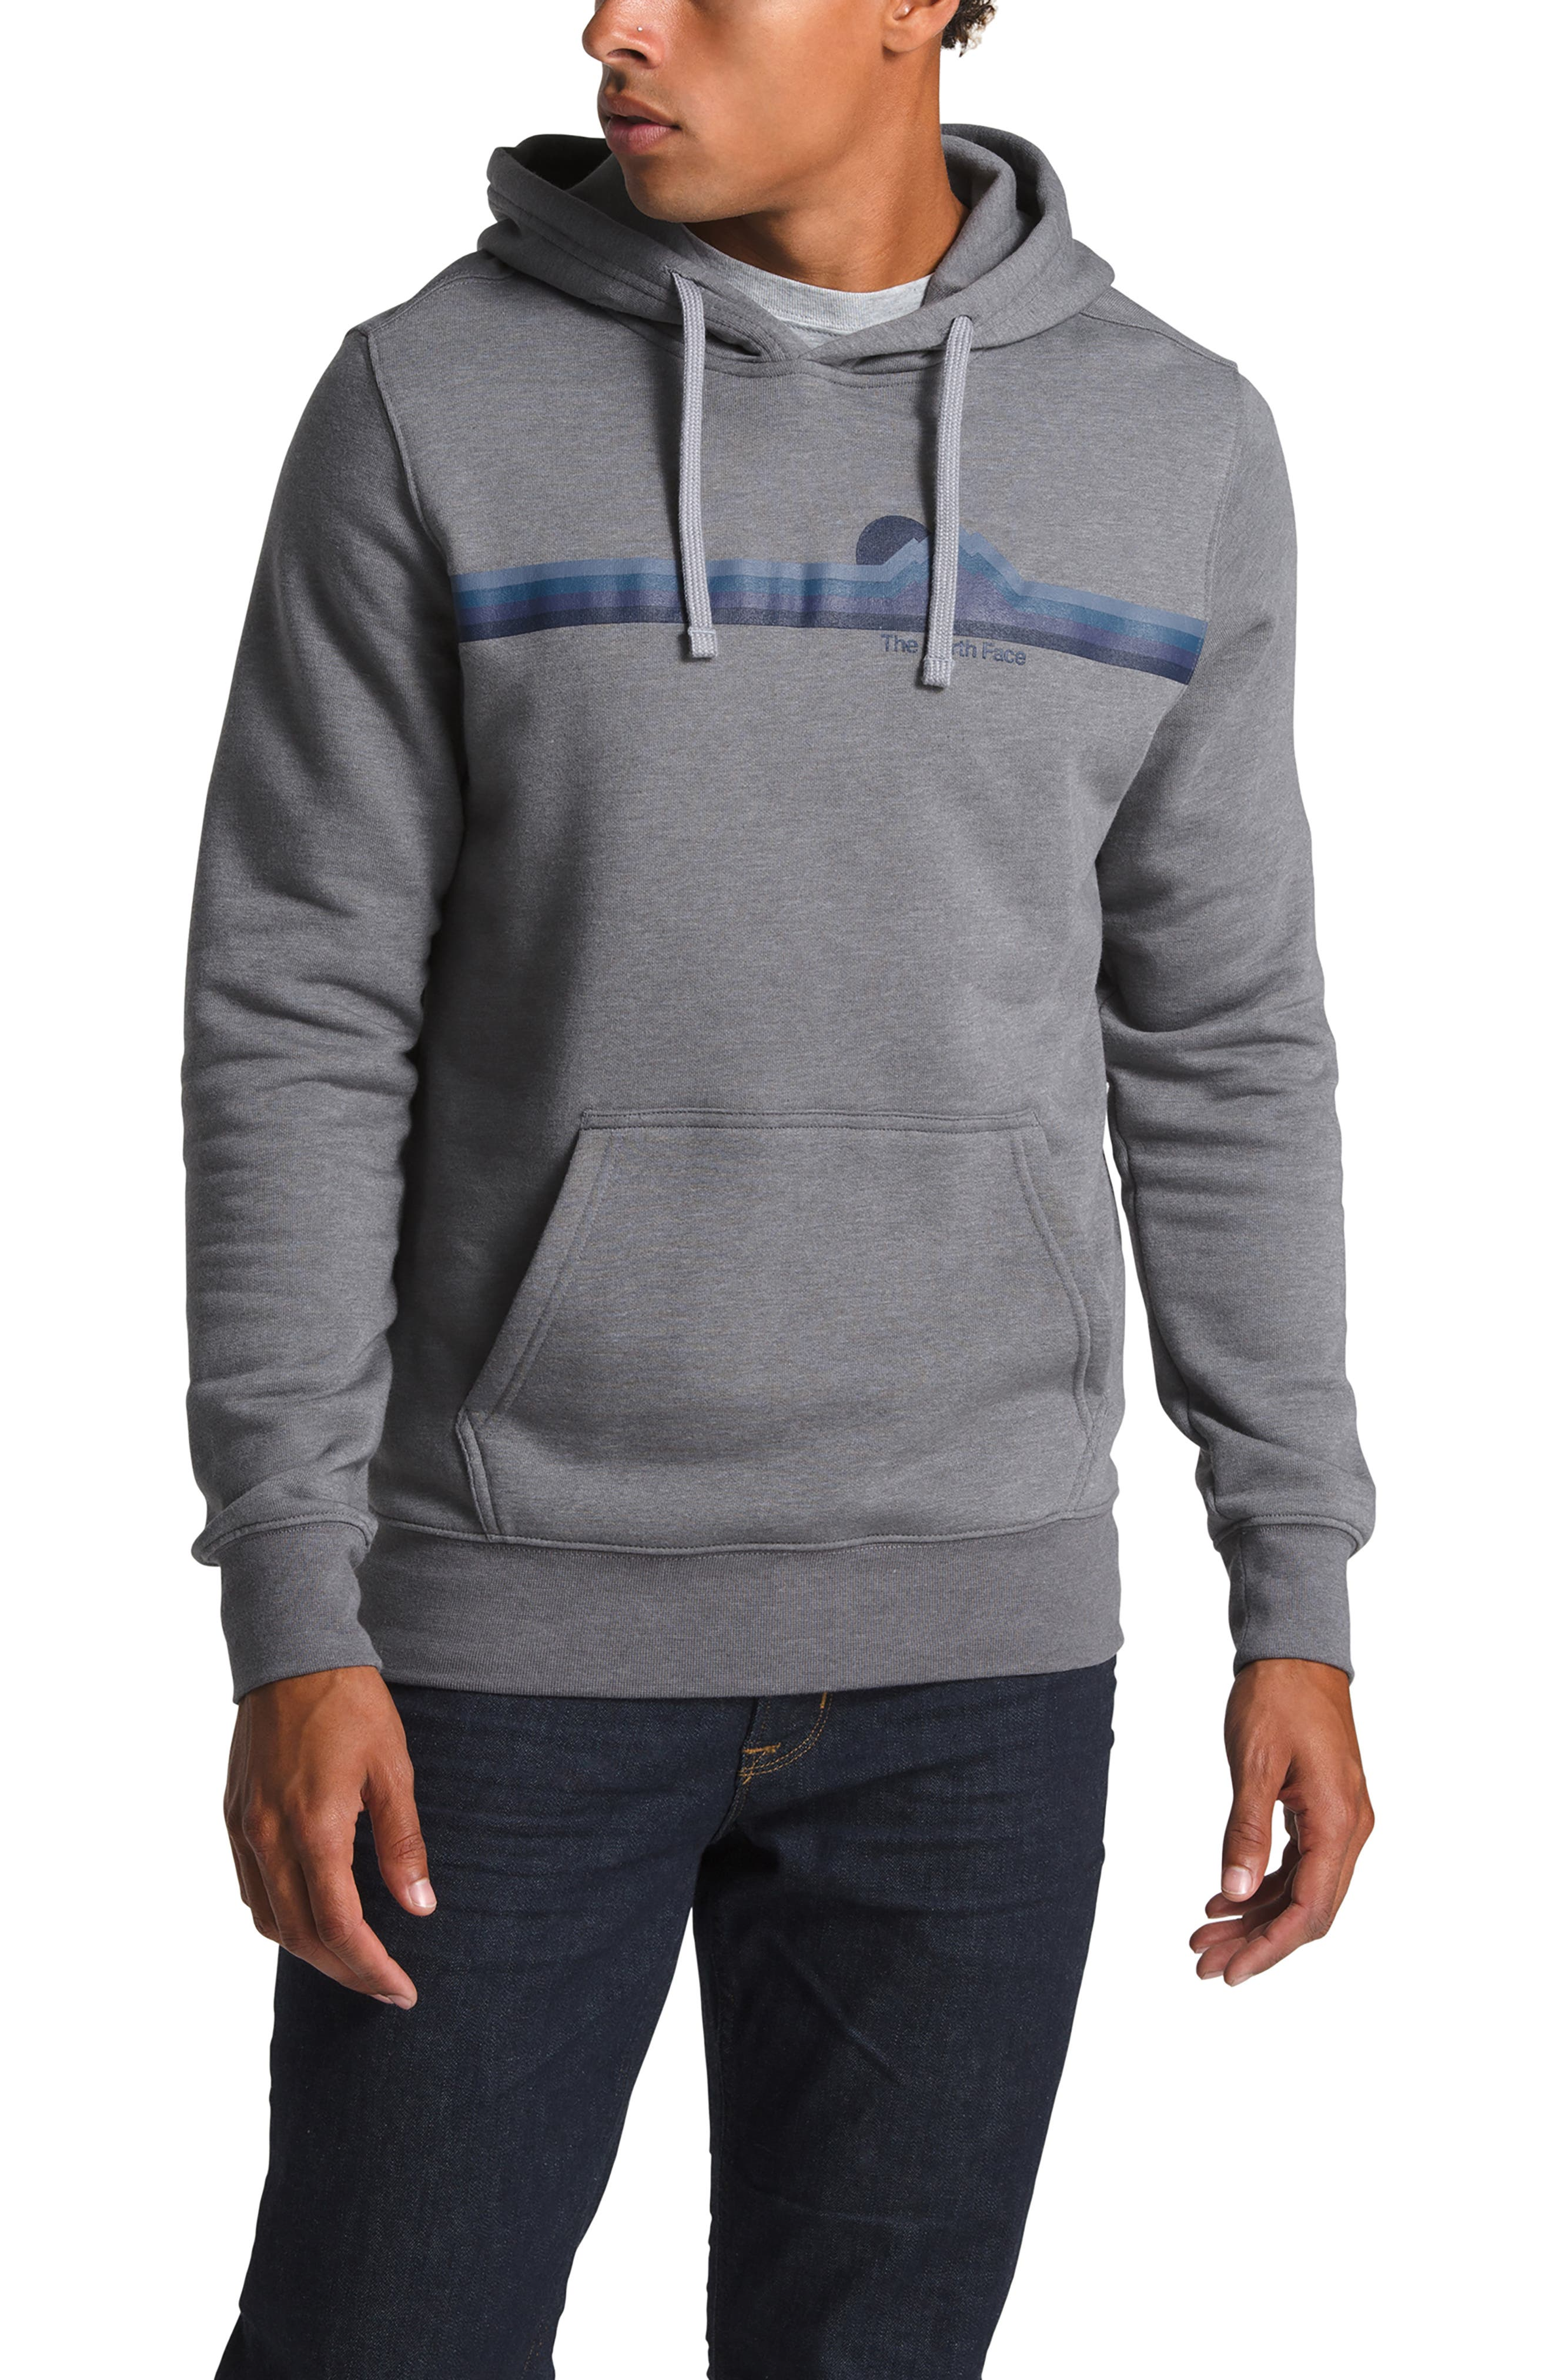 THE NORTH FACE, Gradient Sunset Pullover Hoodie, Main thumbnail 1, color, TNF MEDIUM GREY HEATHER